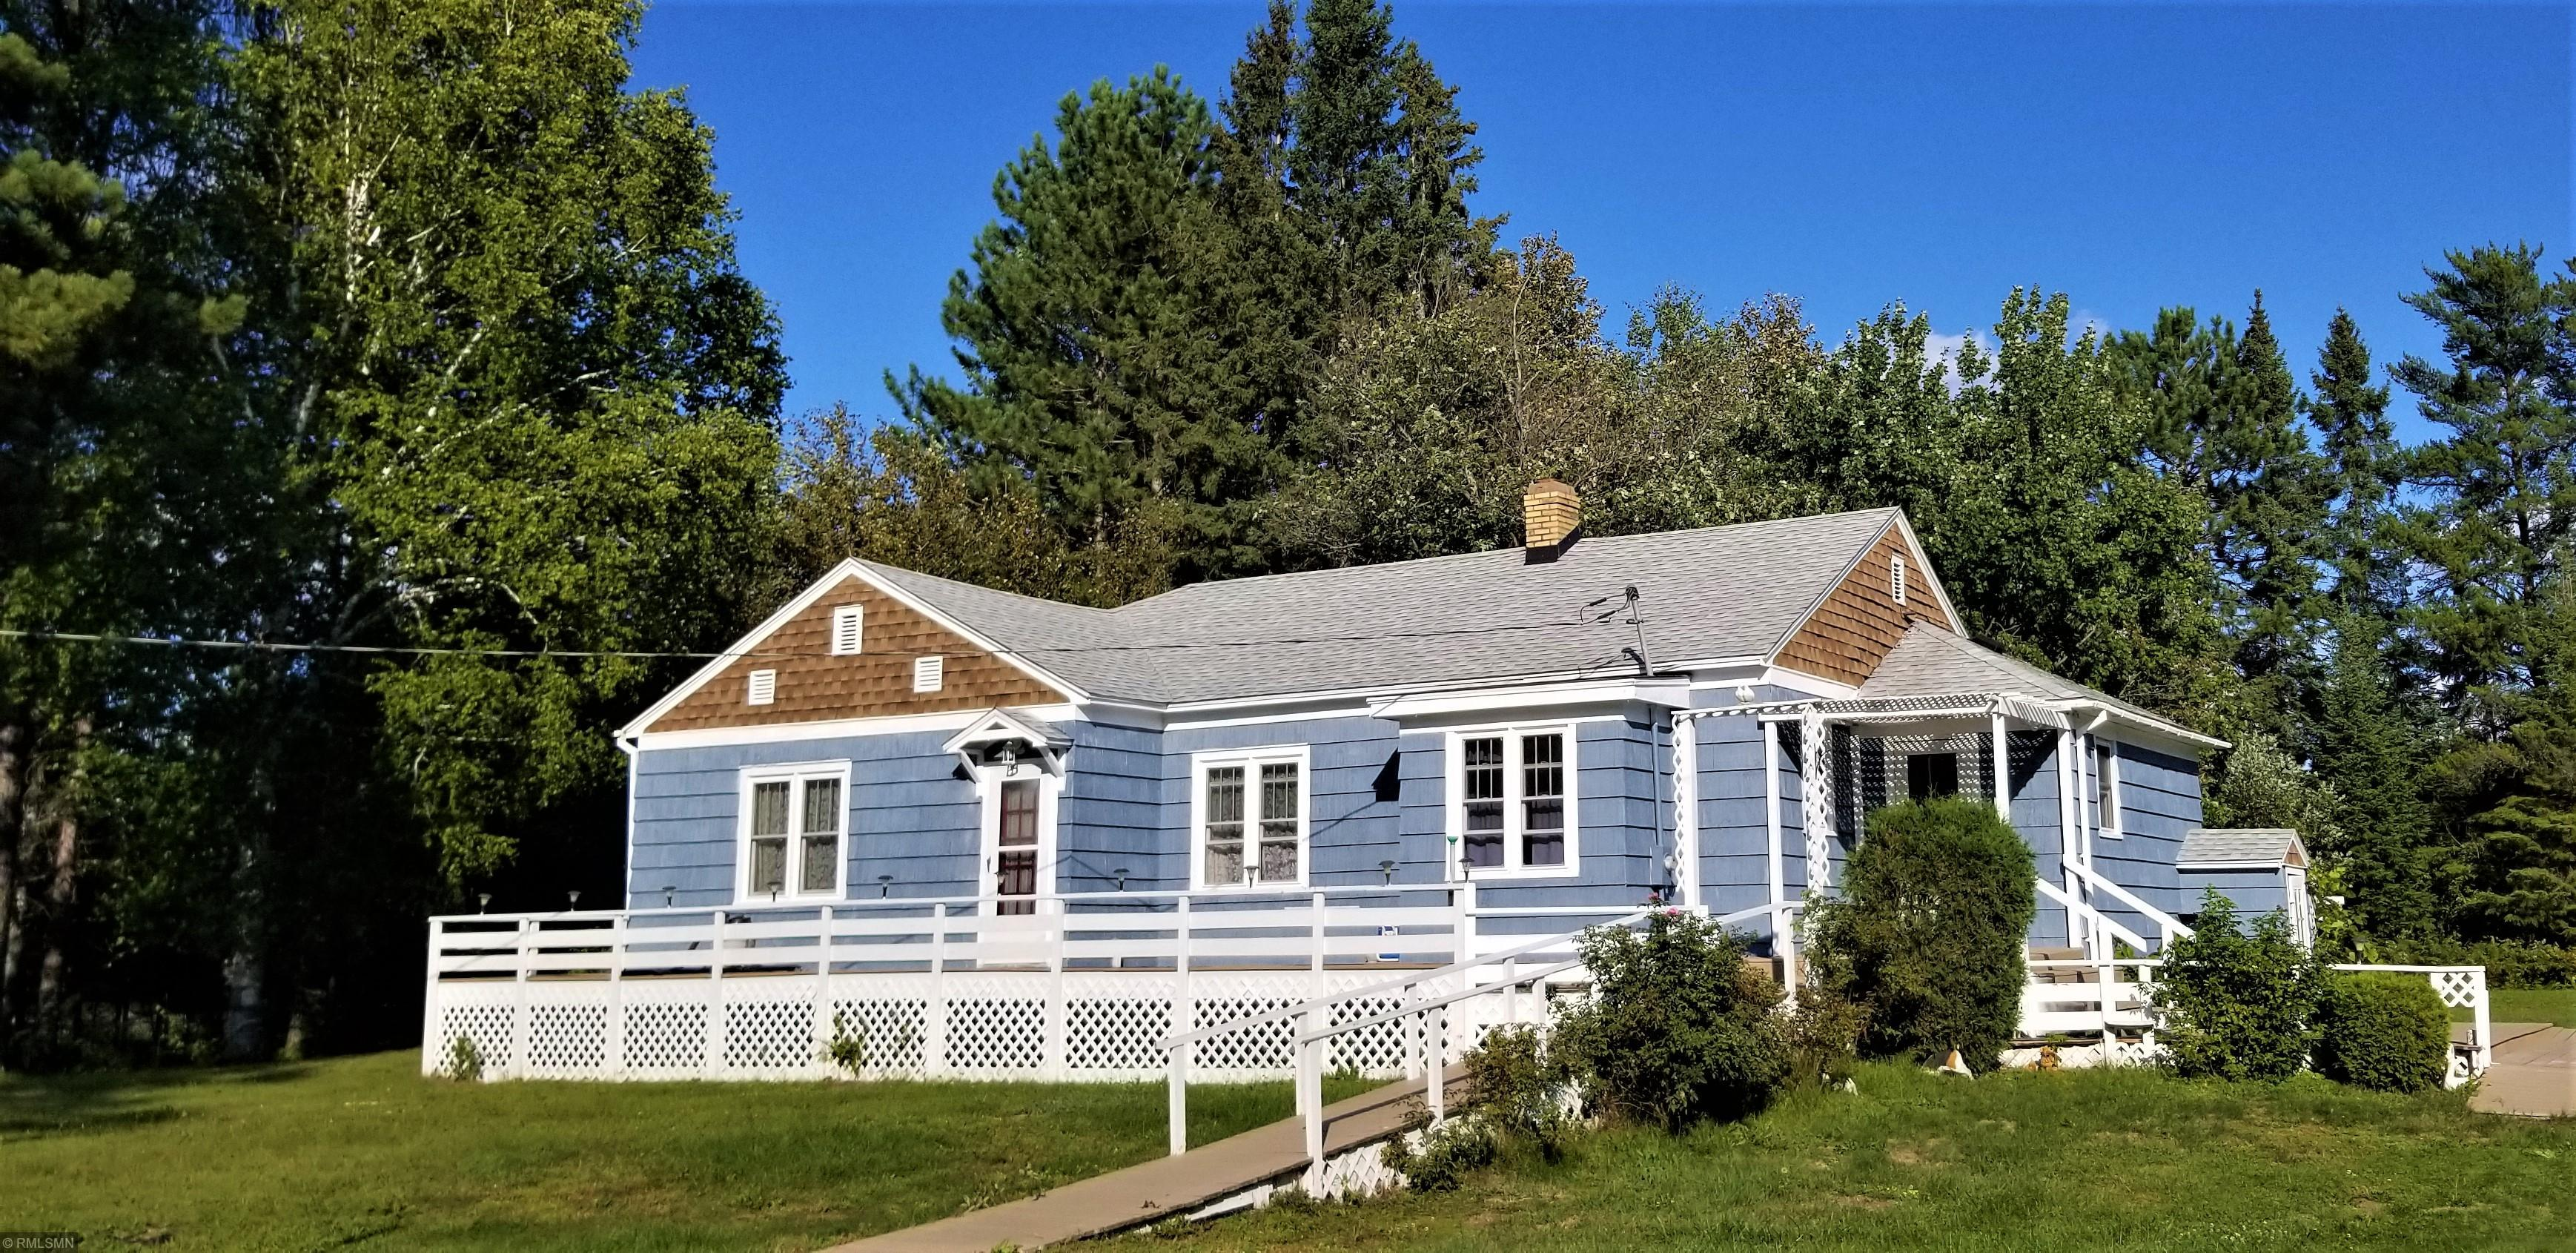 8162 Hwy 37 Property Photo - Eveleth, MN real estate listing